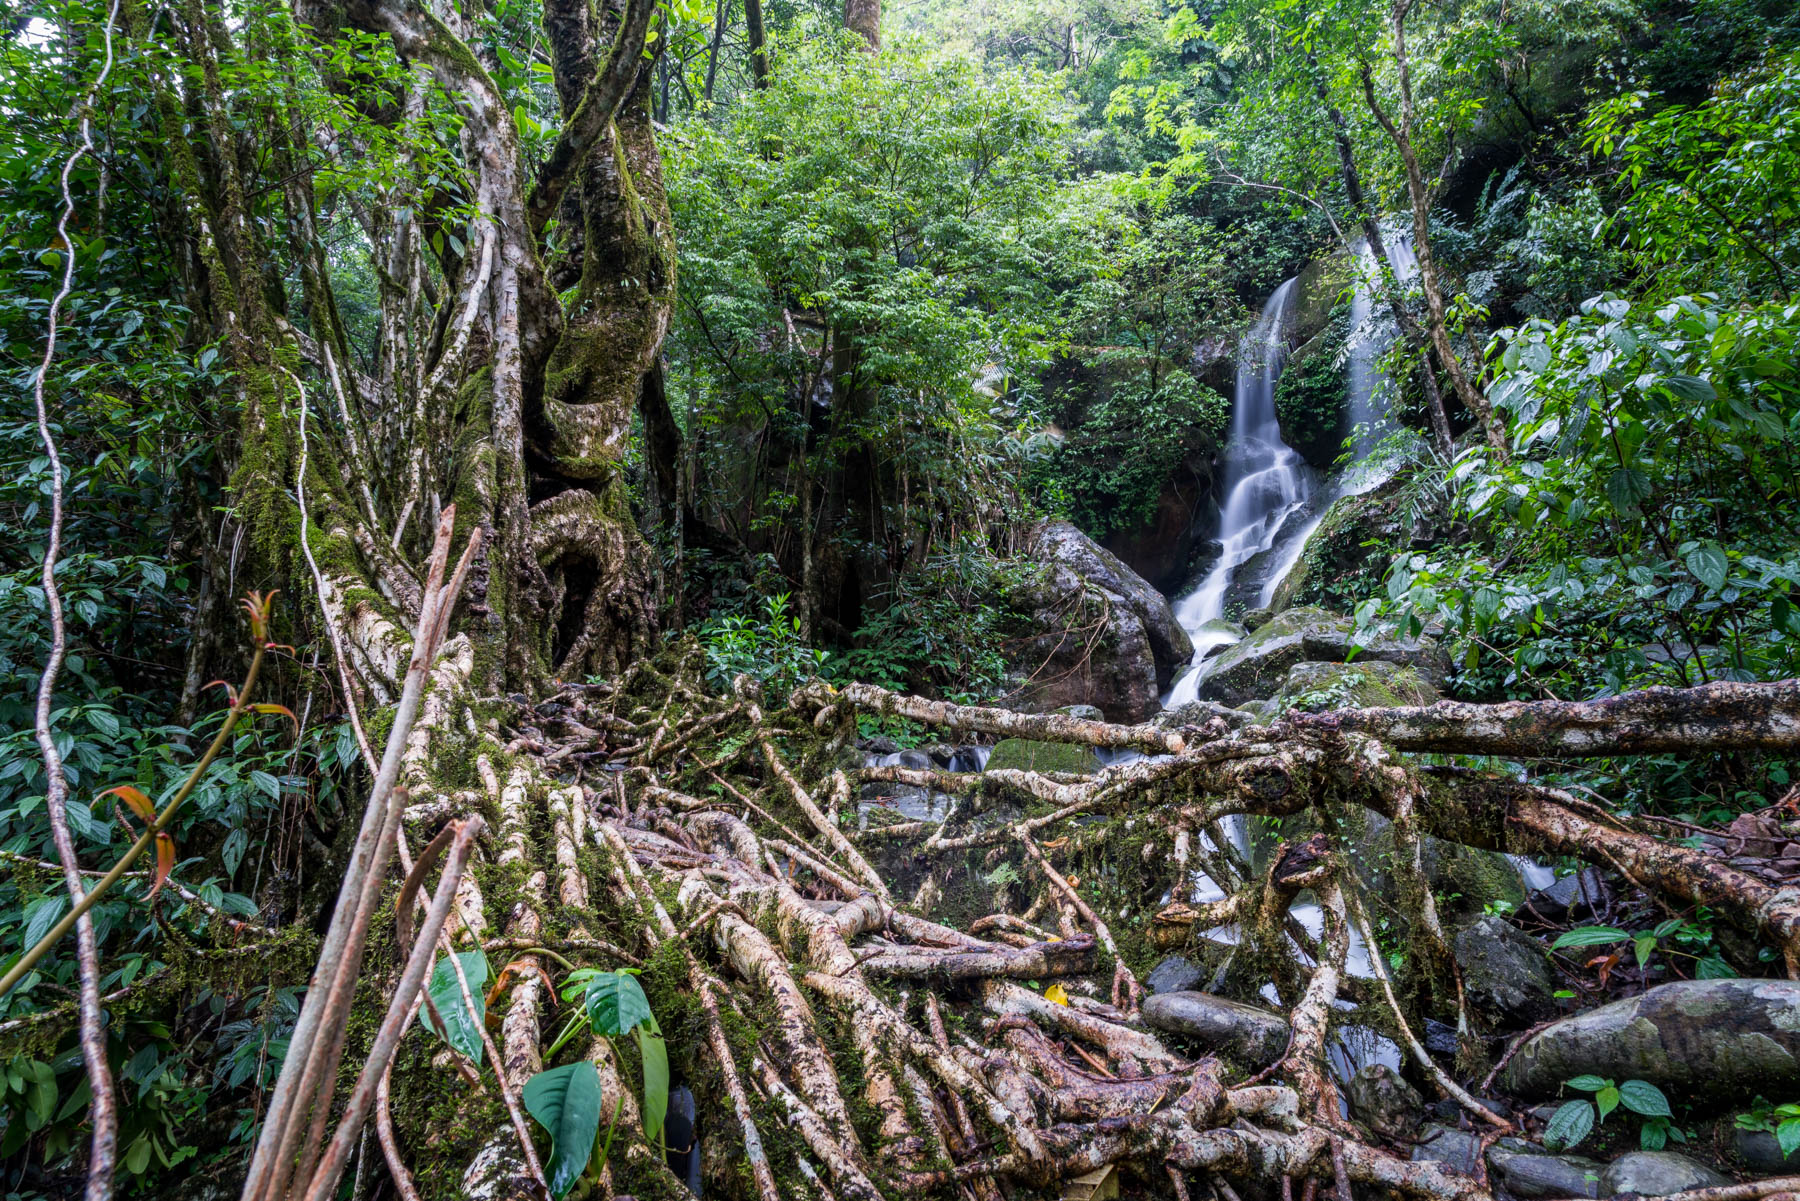 Photo essay of Nongriat and the living root bridges of Meghalaya - HDR image of a root bridge and waterfall - Lost With Purpose